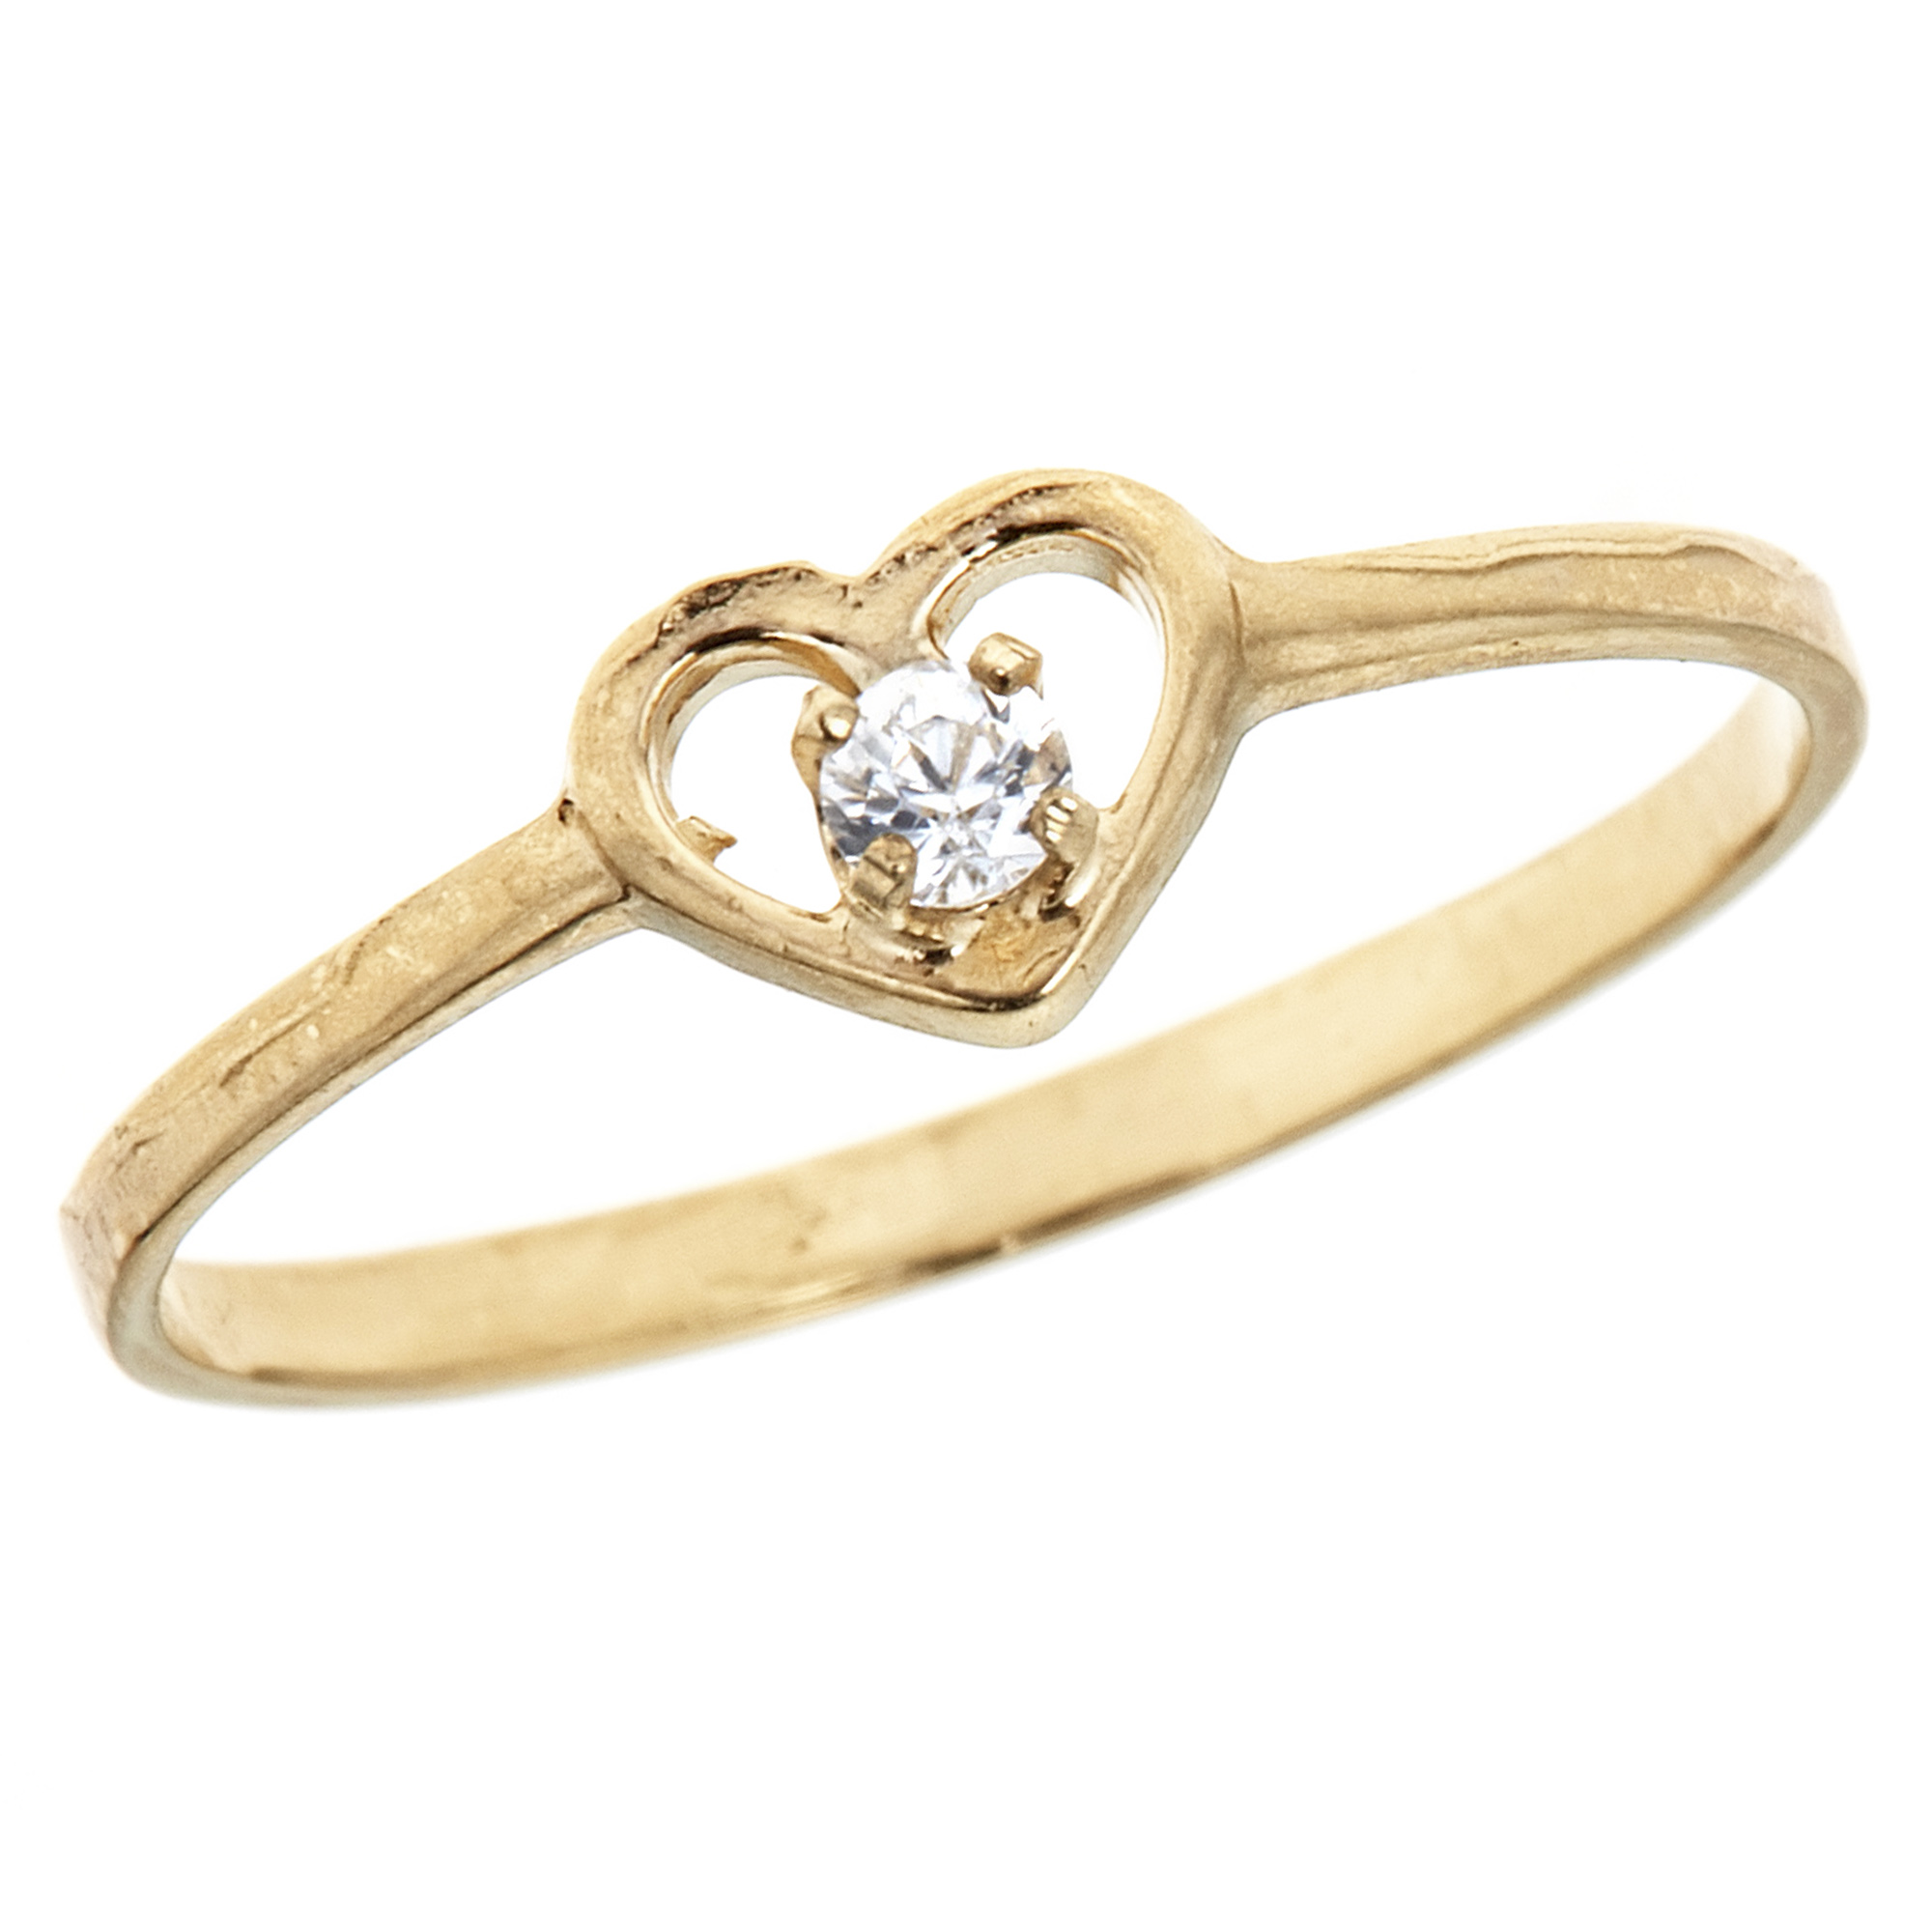 Children's 14K Solid Yellow Gold Baby Cubic Zirconia Open Heart Ring Kids Size 3.5